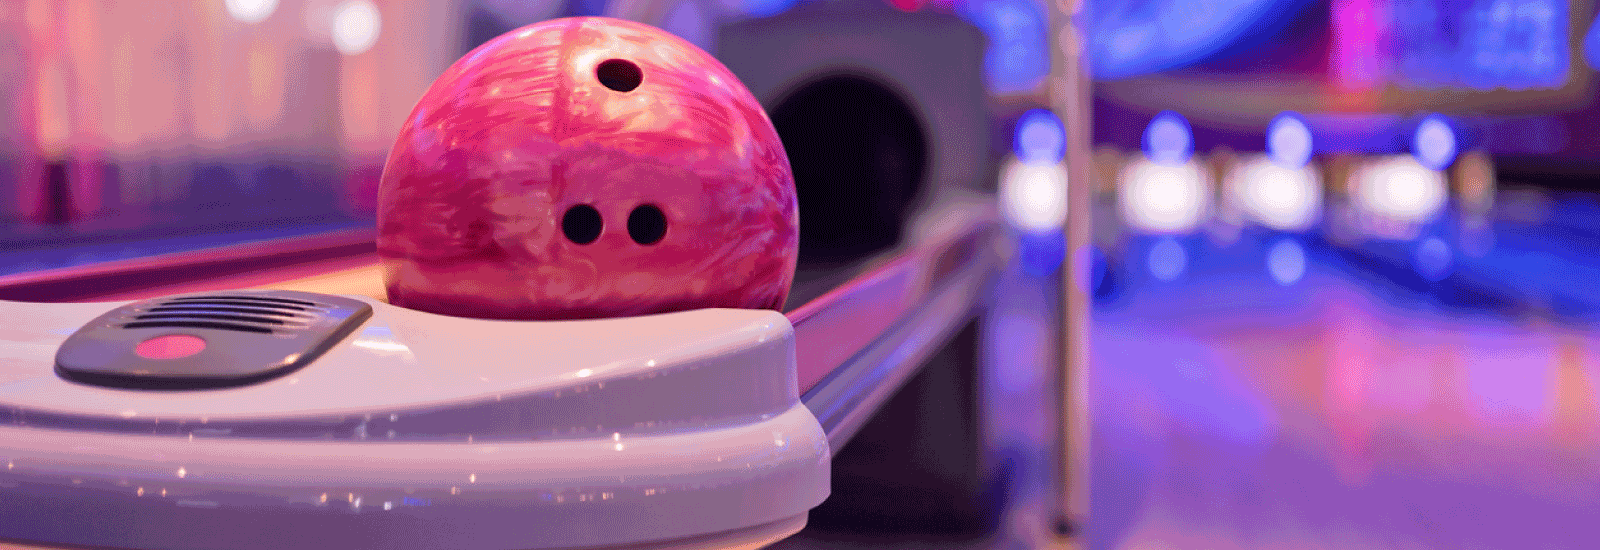 Cannon AFB Bowling Alley